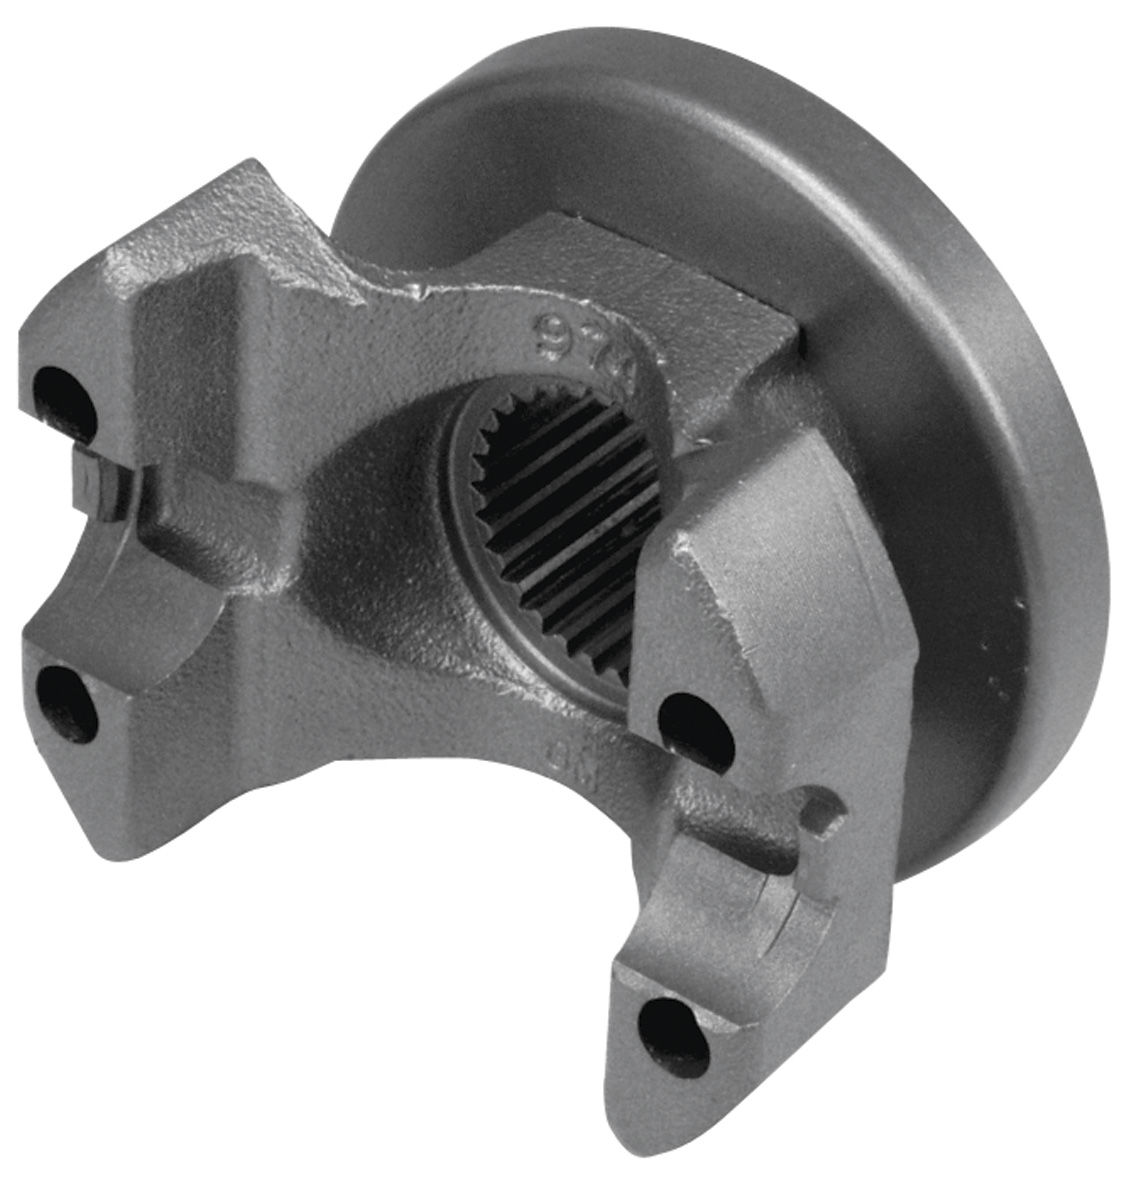 Yoke, Rear End, 1964-72 12-Bolt